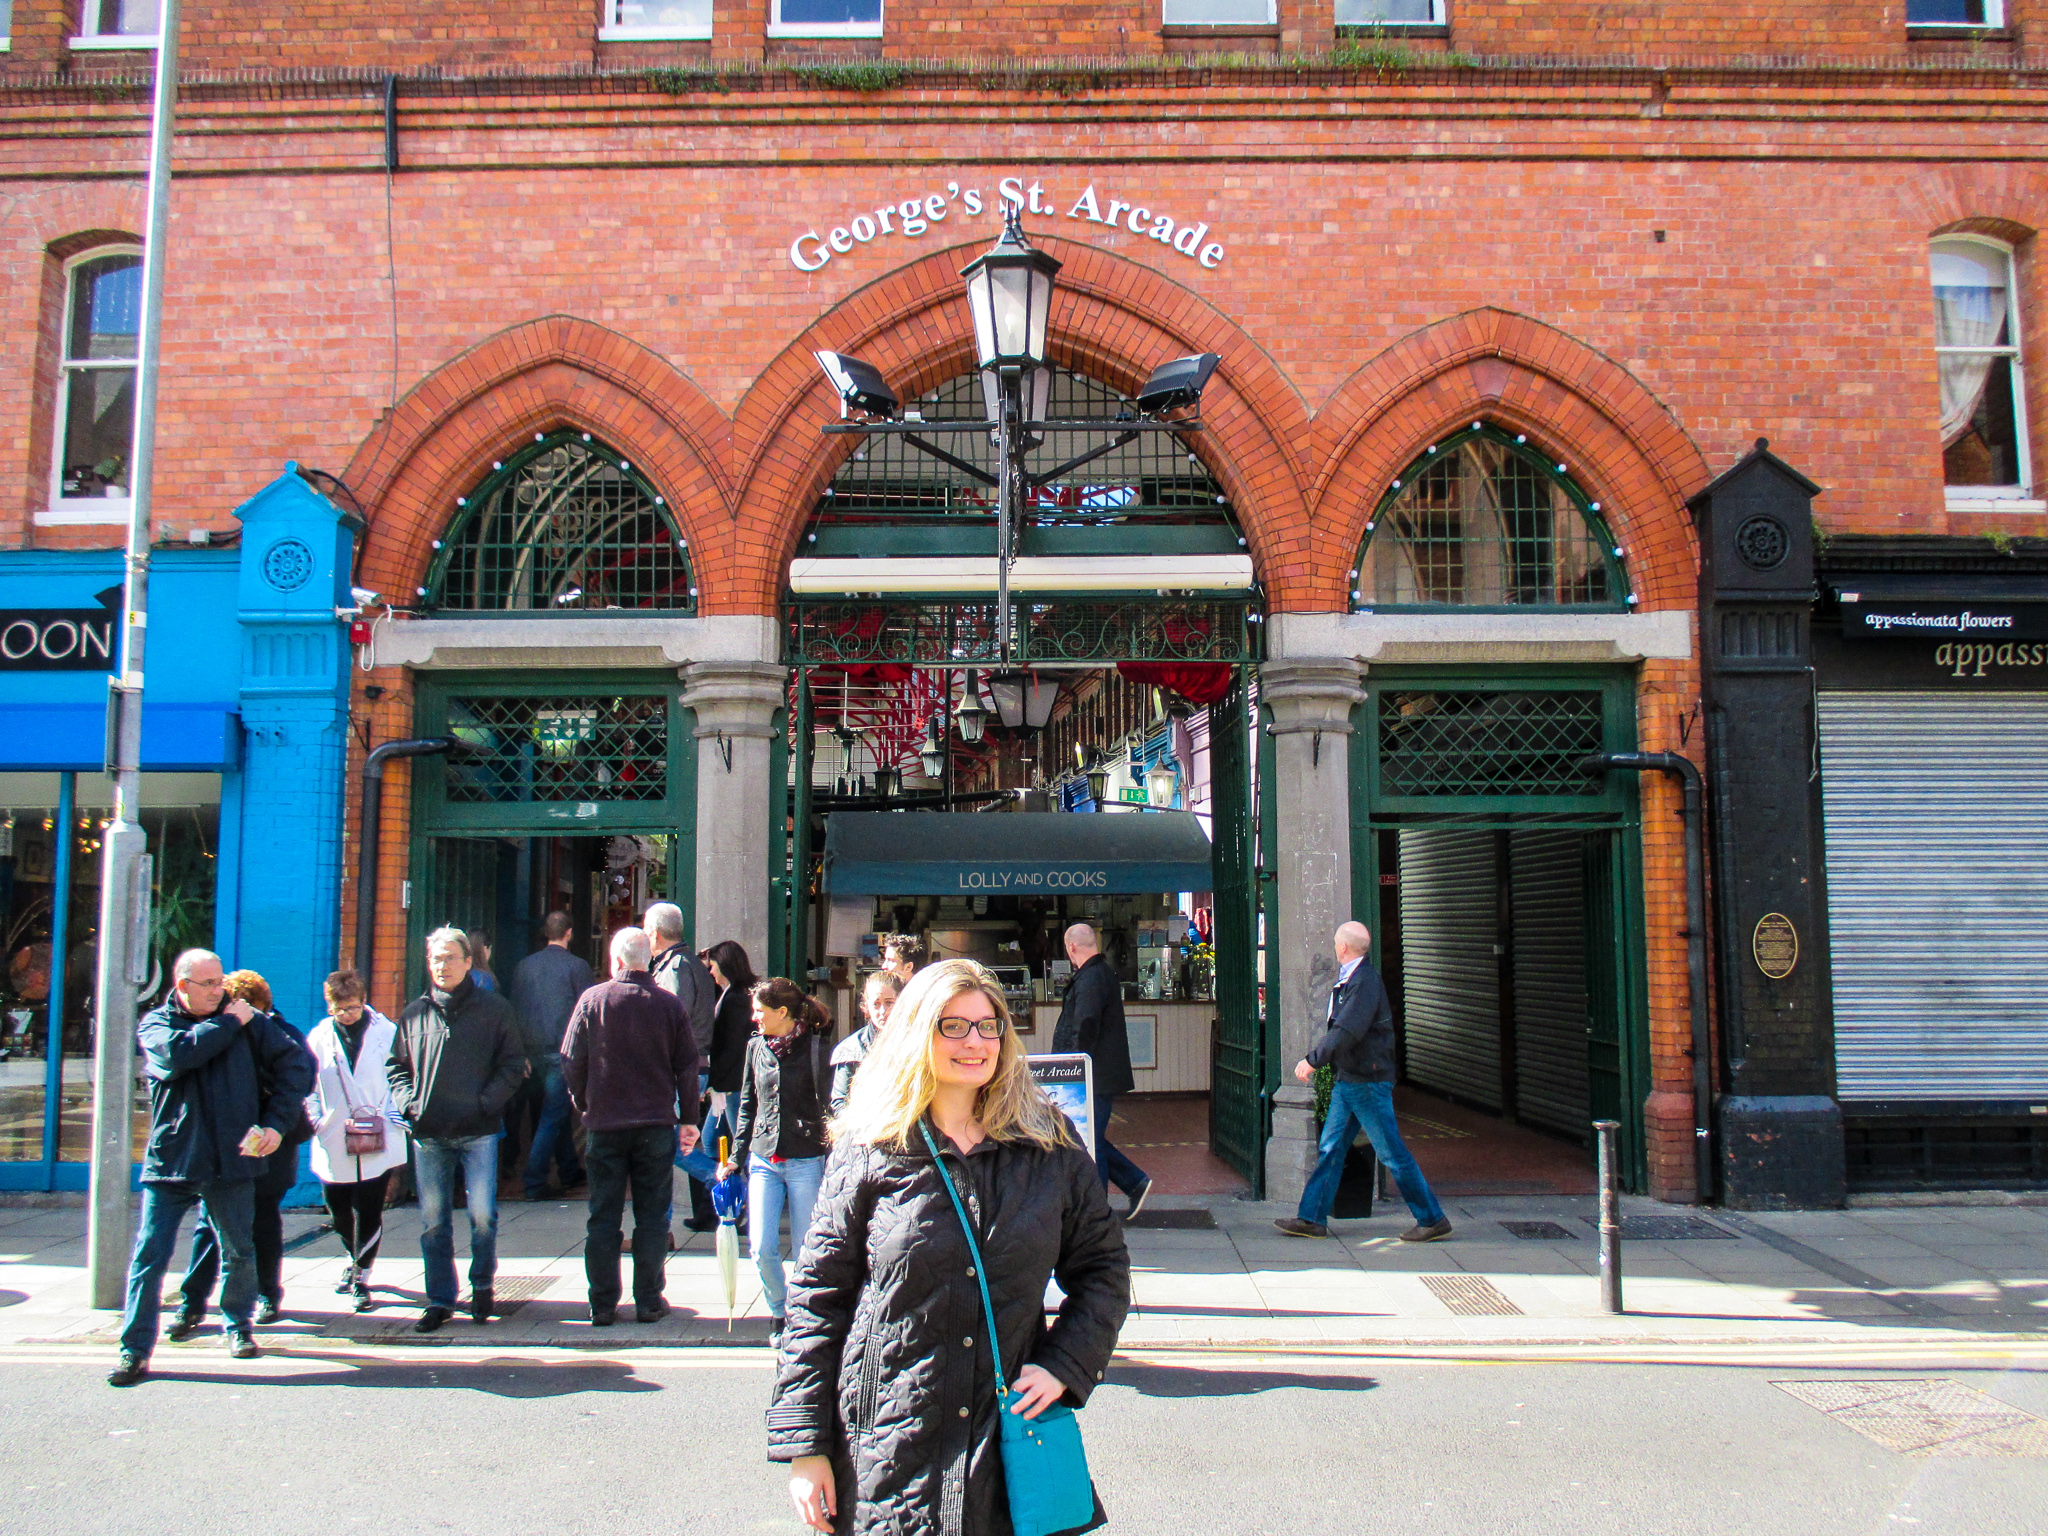 traveling to dublin alone and loving george's st arcade